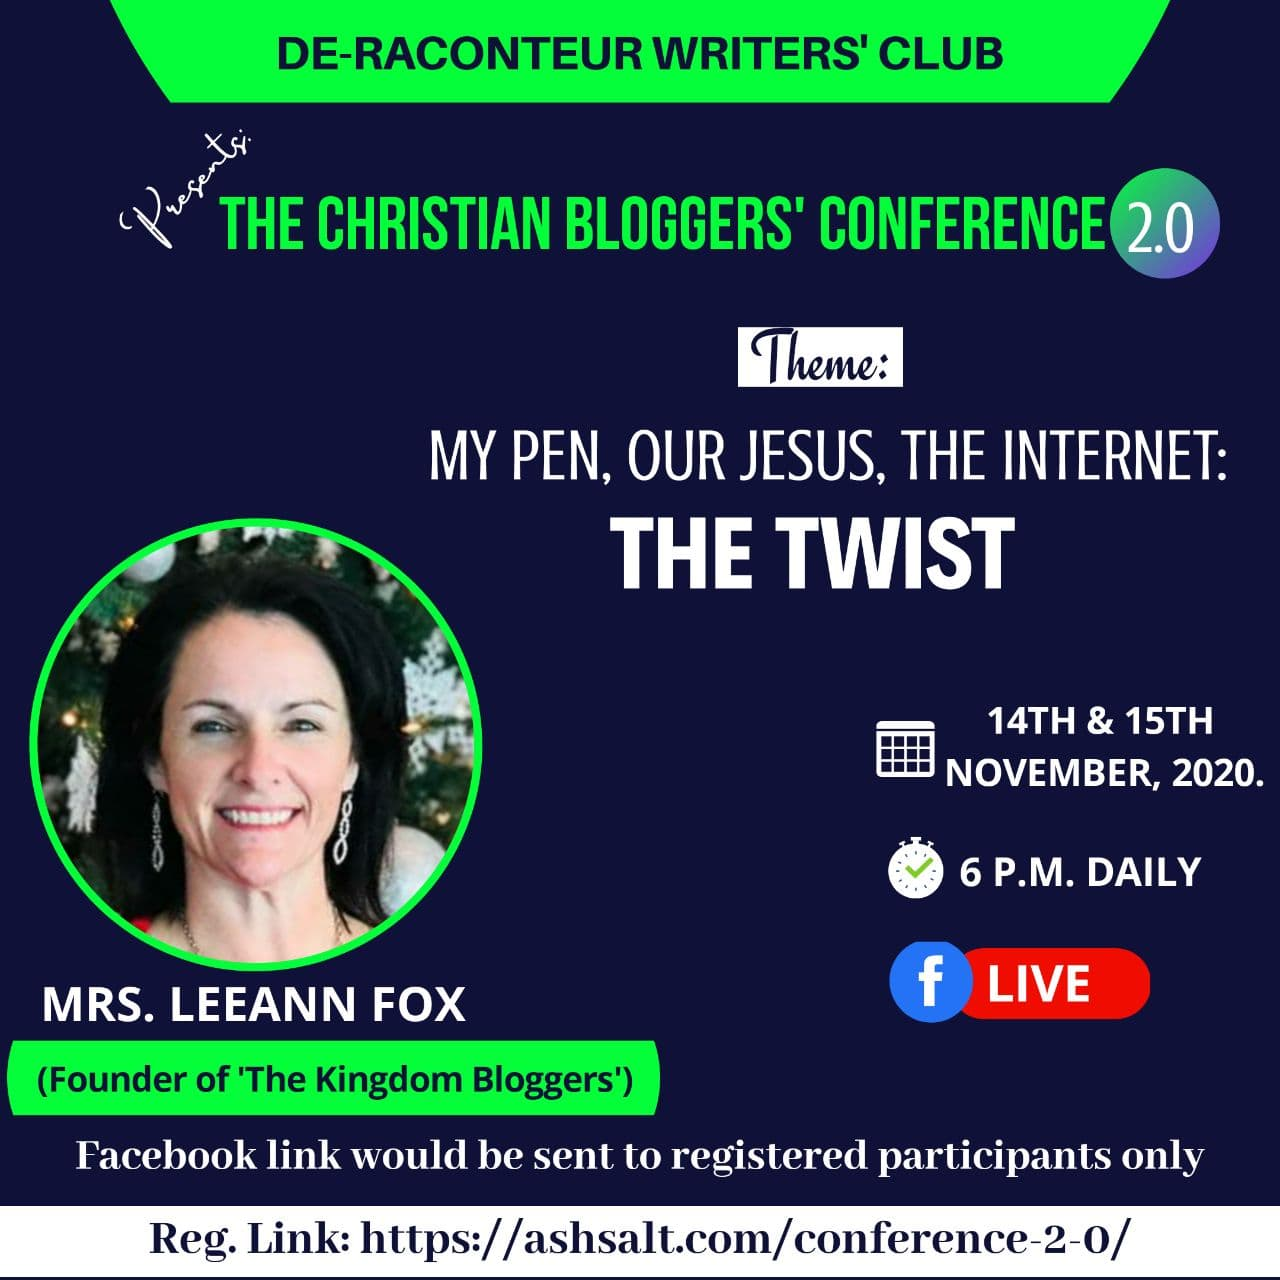 The Christian Bloggers Conference 2.0